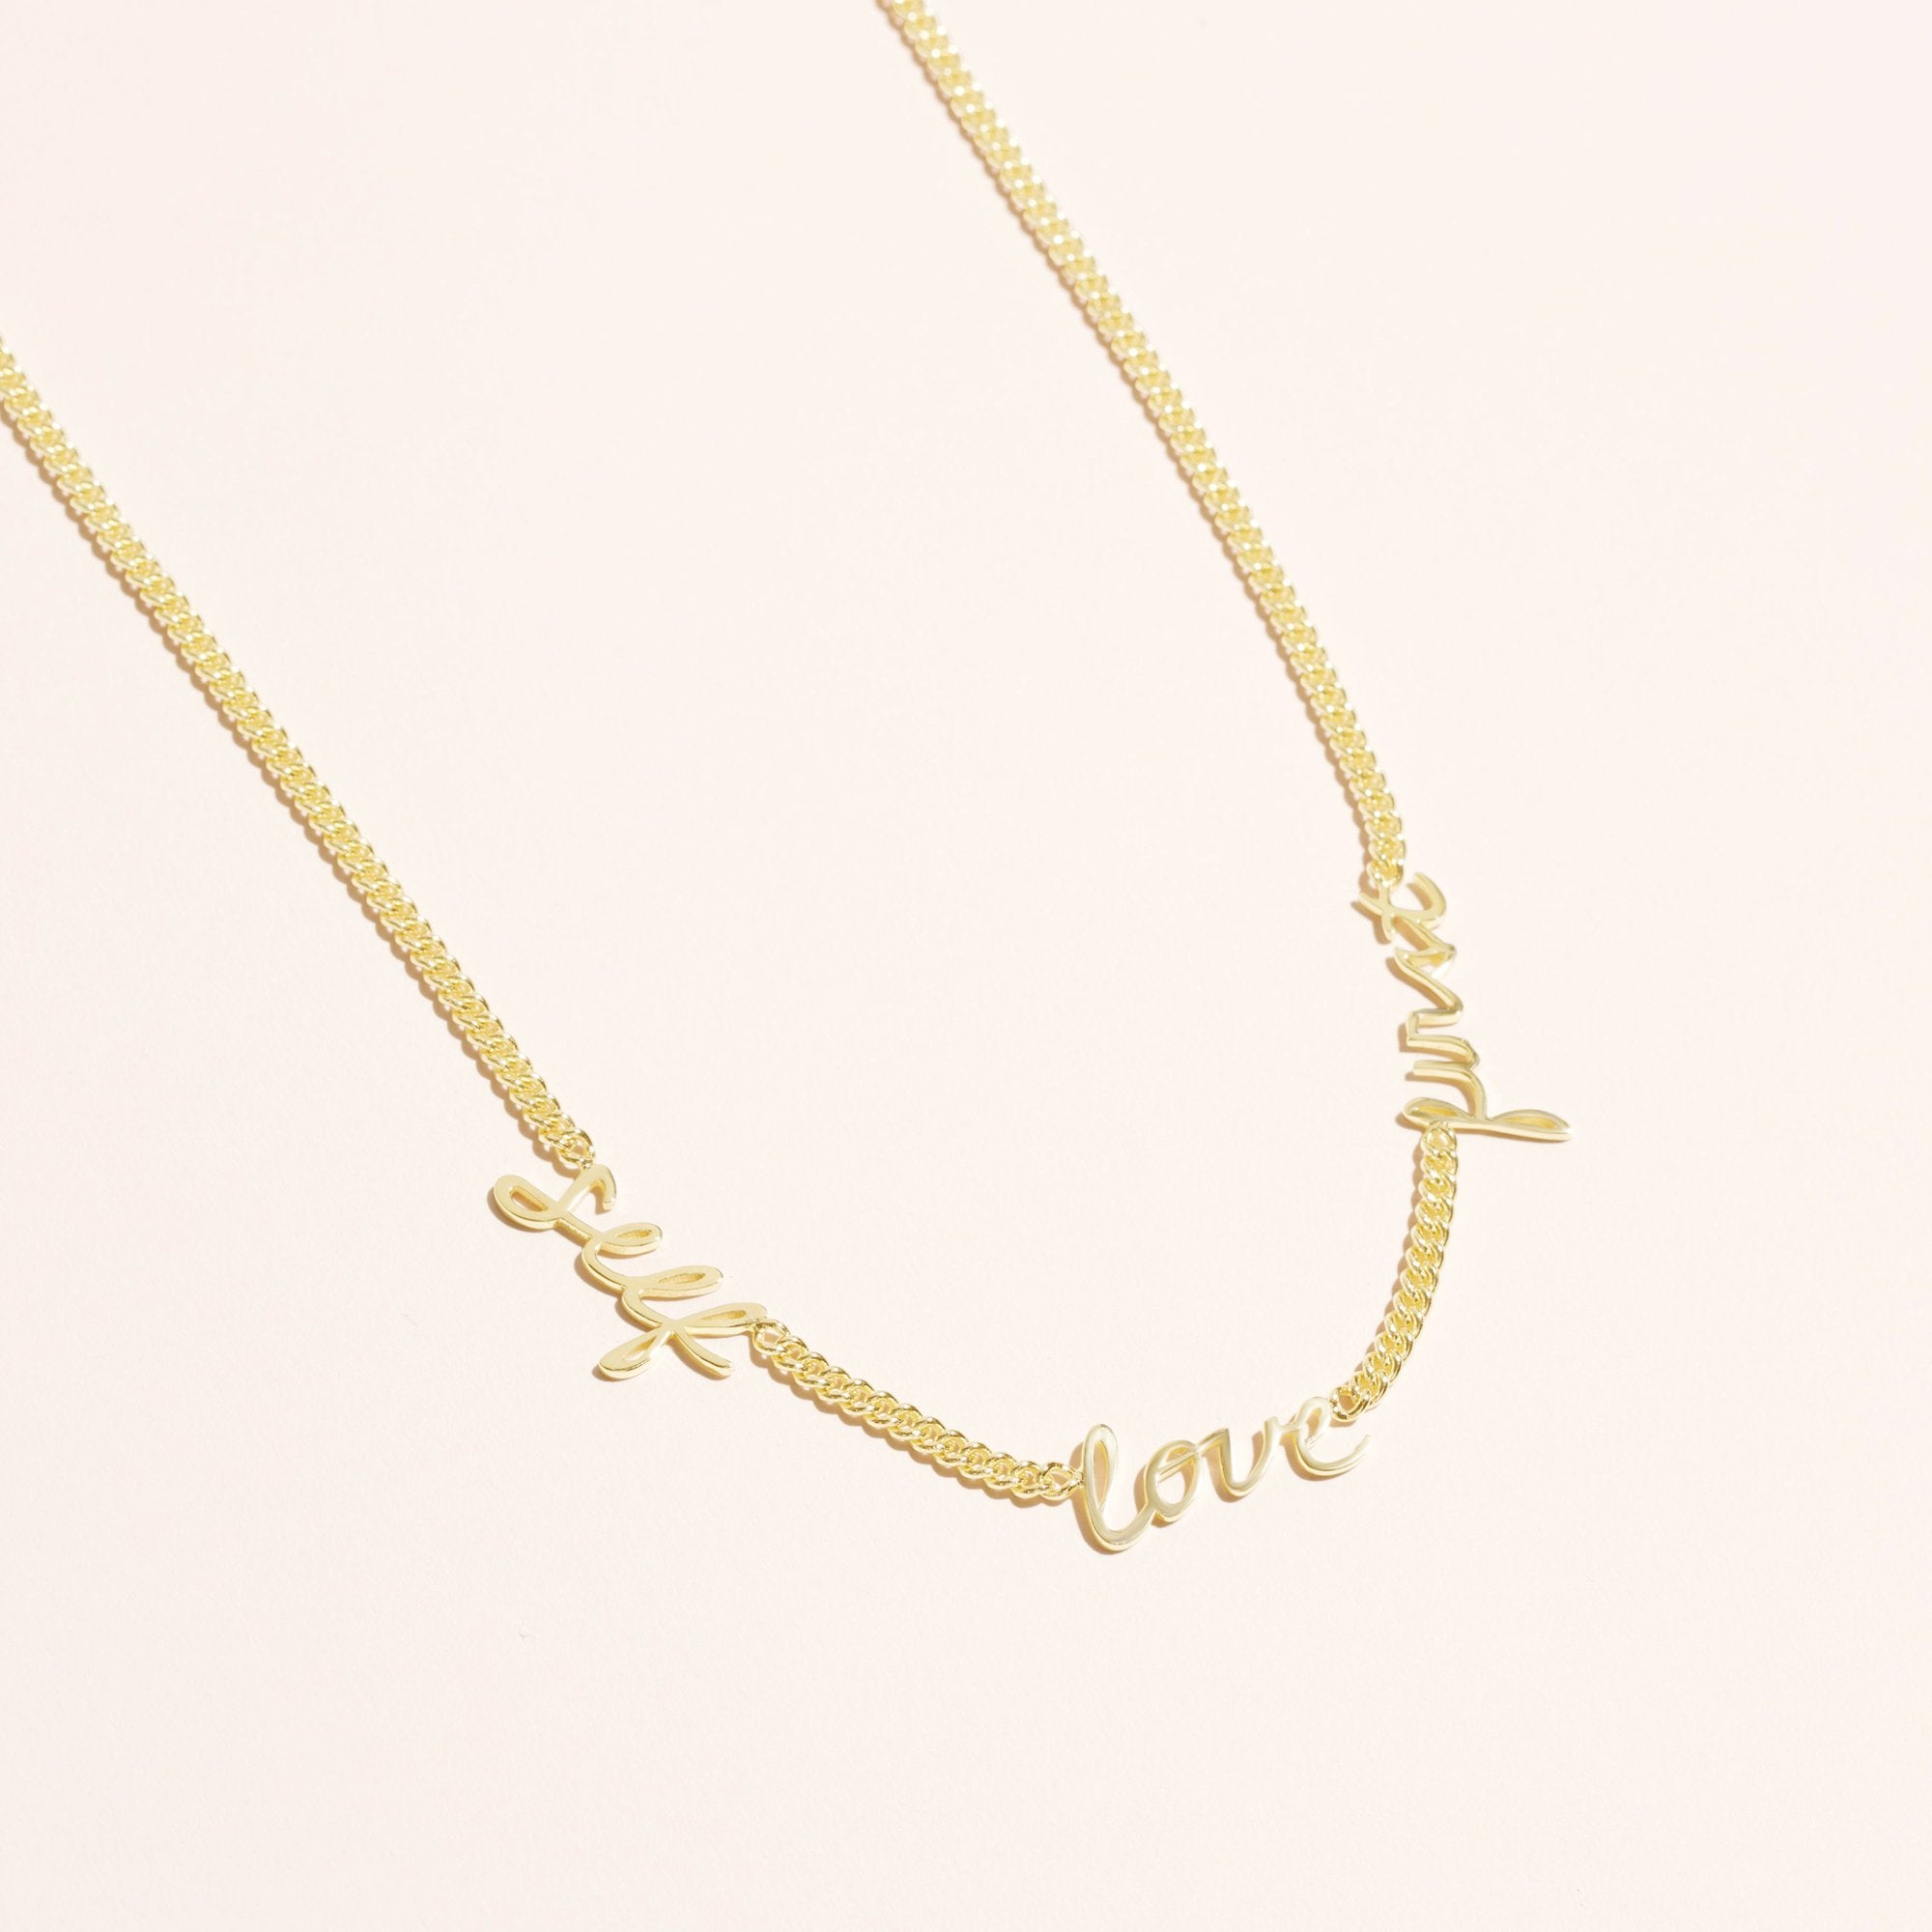 Self Love First Necklace